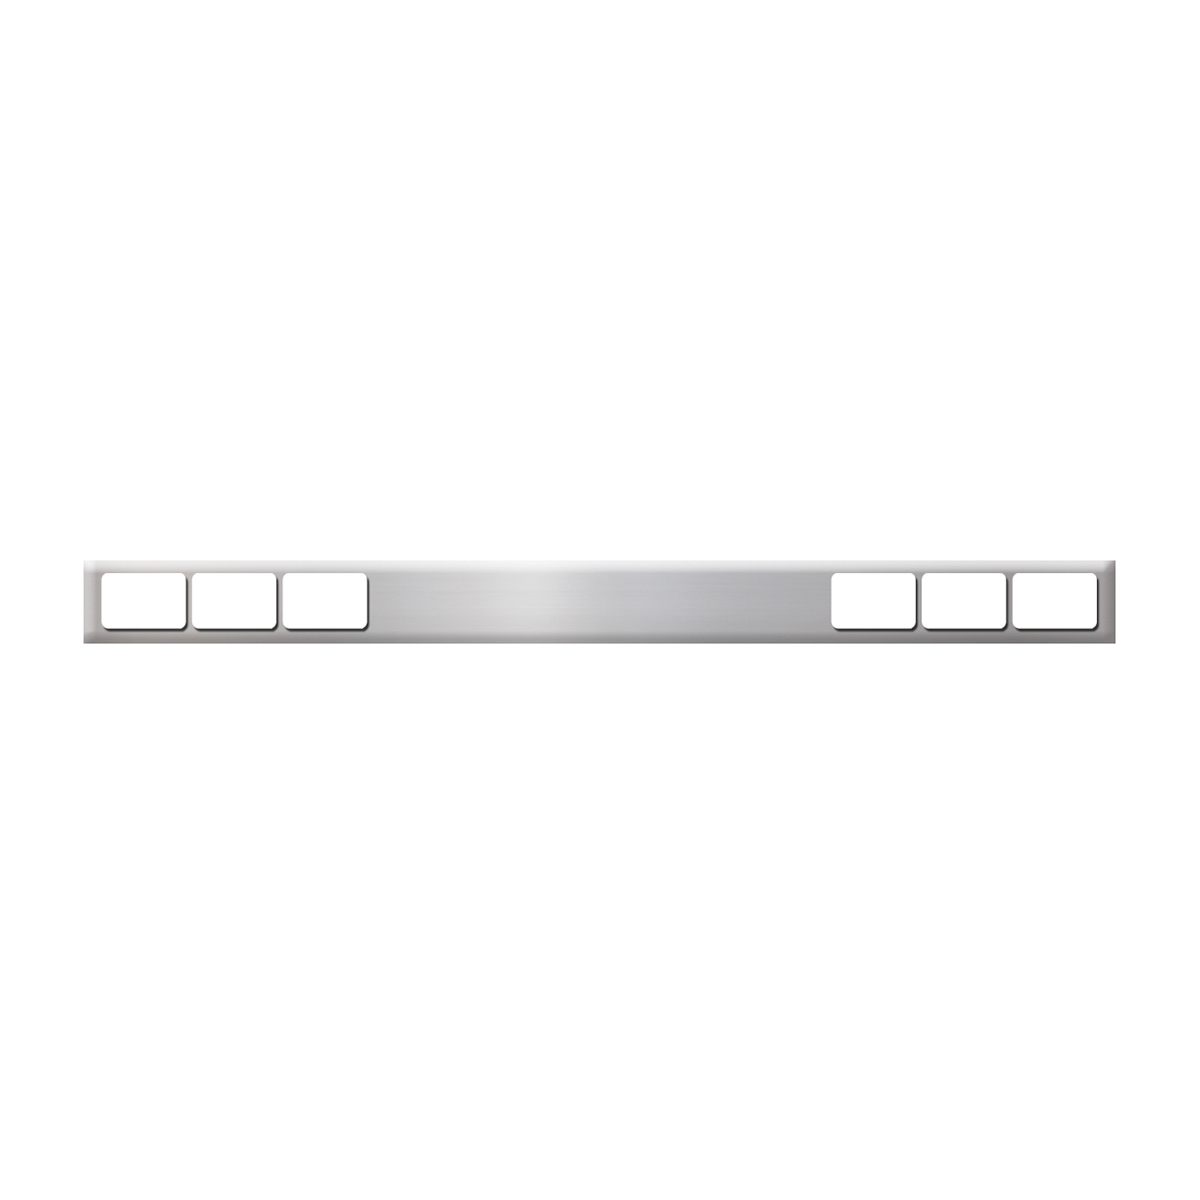 #80126 Chrome Plated Steel Bar